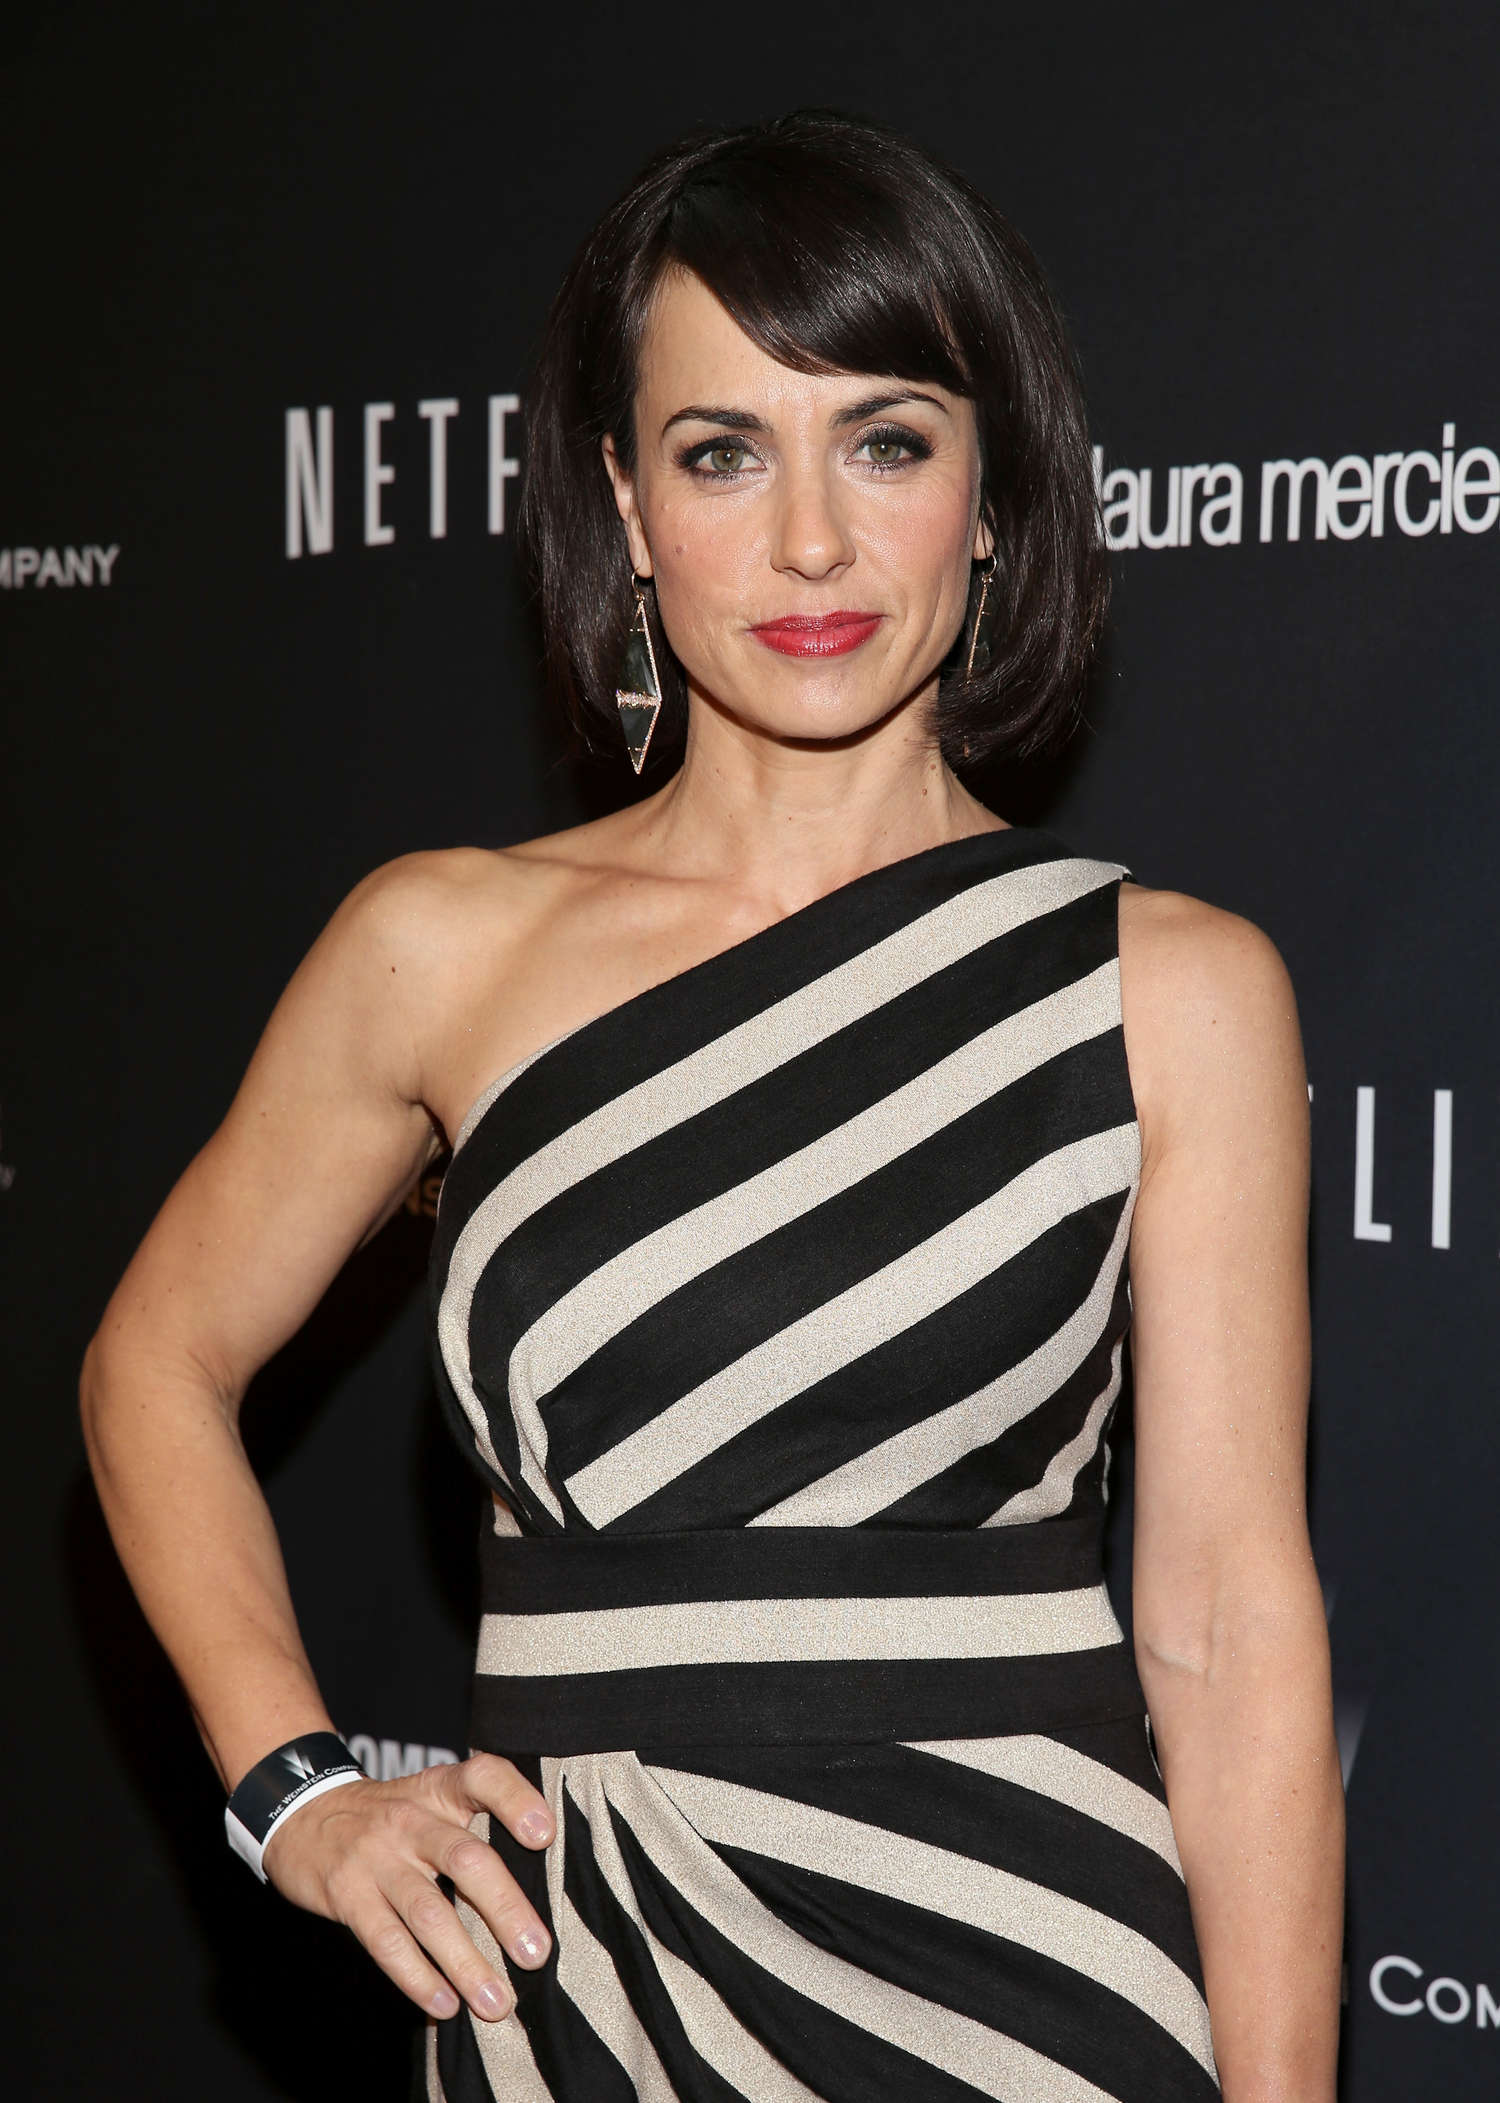 constance zimmer imdbconstance zimmer house of cards, constance zimmer imdb, constance zimmer instagram, constance zimmer twitter, constance zimmer, constance zimmer net worth, constance zimmer agents of shield, constance zimmer wiki, constance zimmer unreal, constance zimmer young, constance zimmer natasha leggero, constance zimmer photos, constance zimmer seinfeld, constance zimmer grey's anatomy, constance zimmer husband